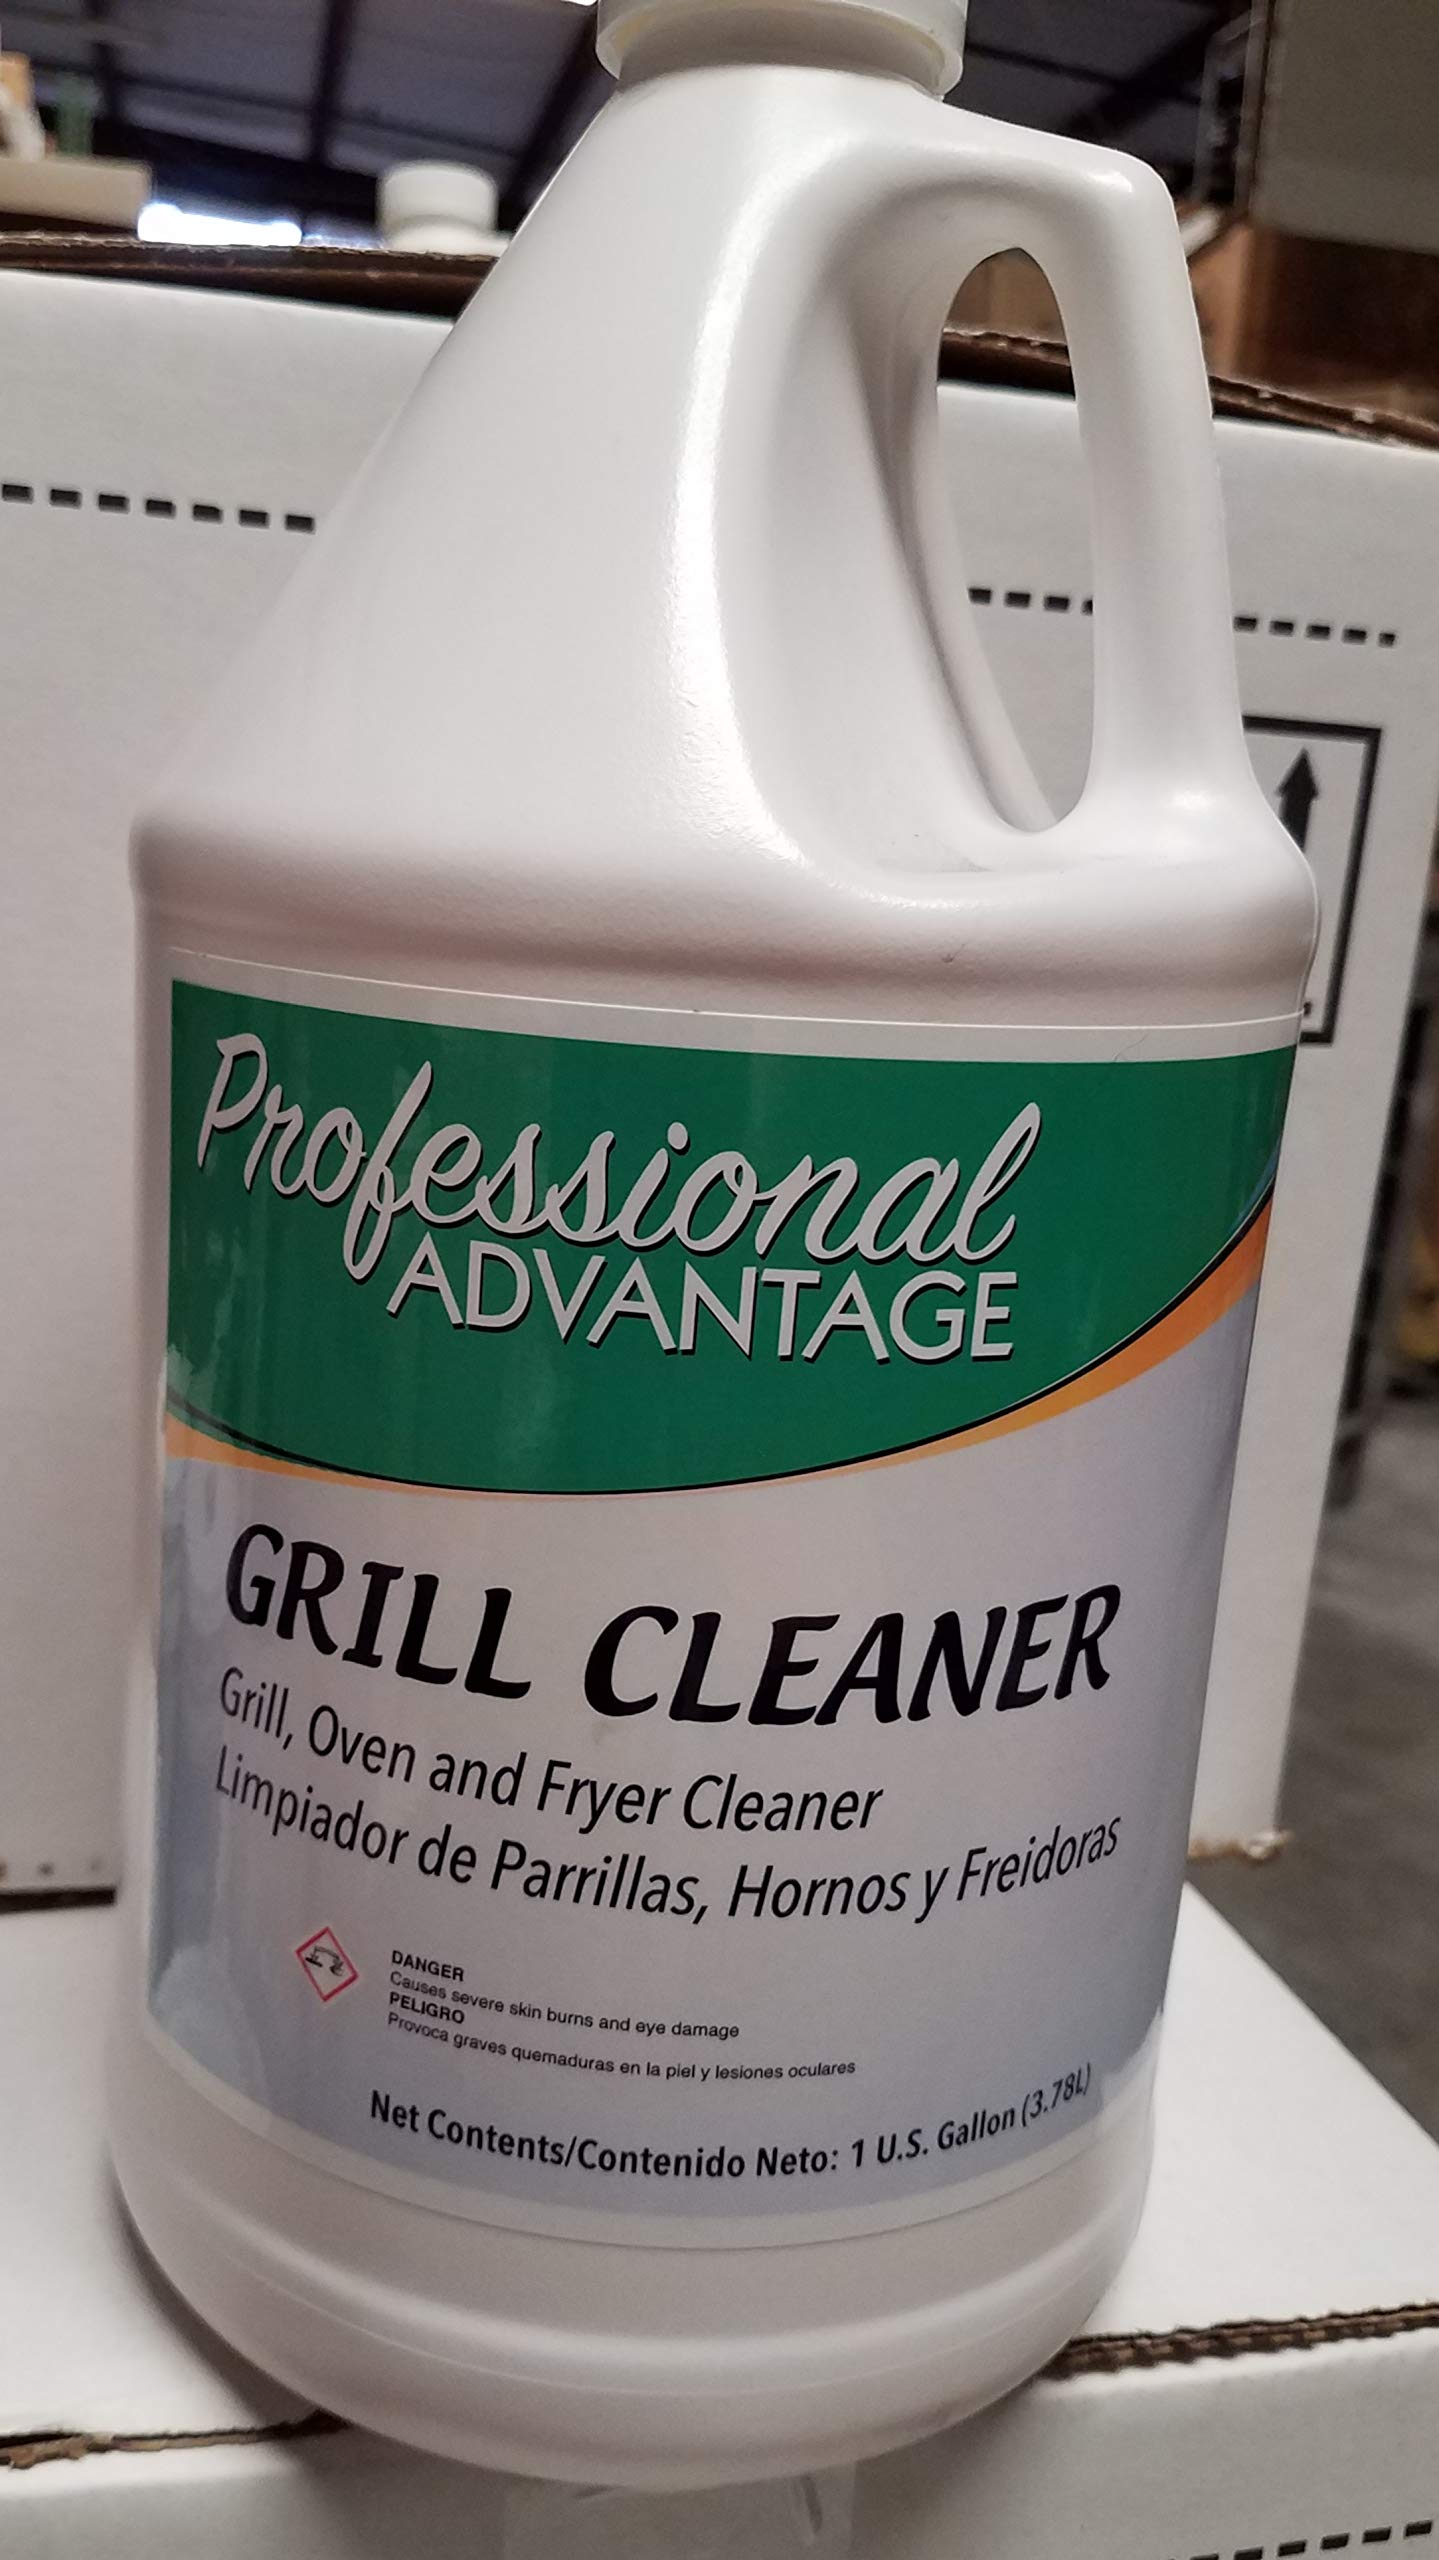 Professional Advantage Grill Cleaner